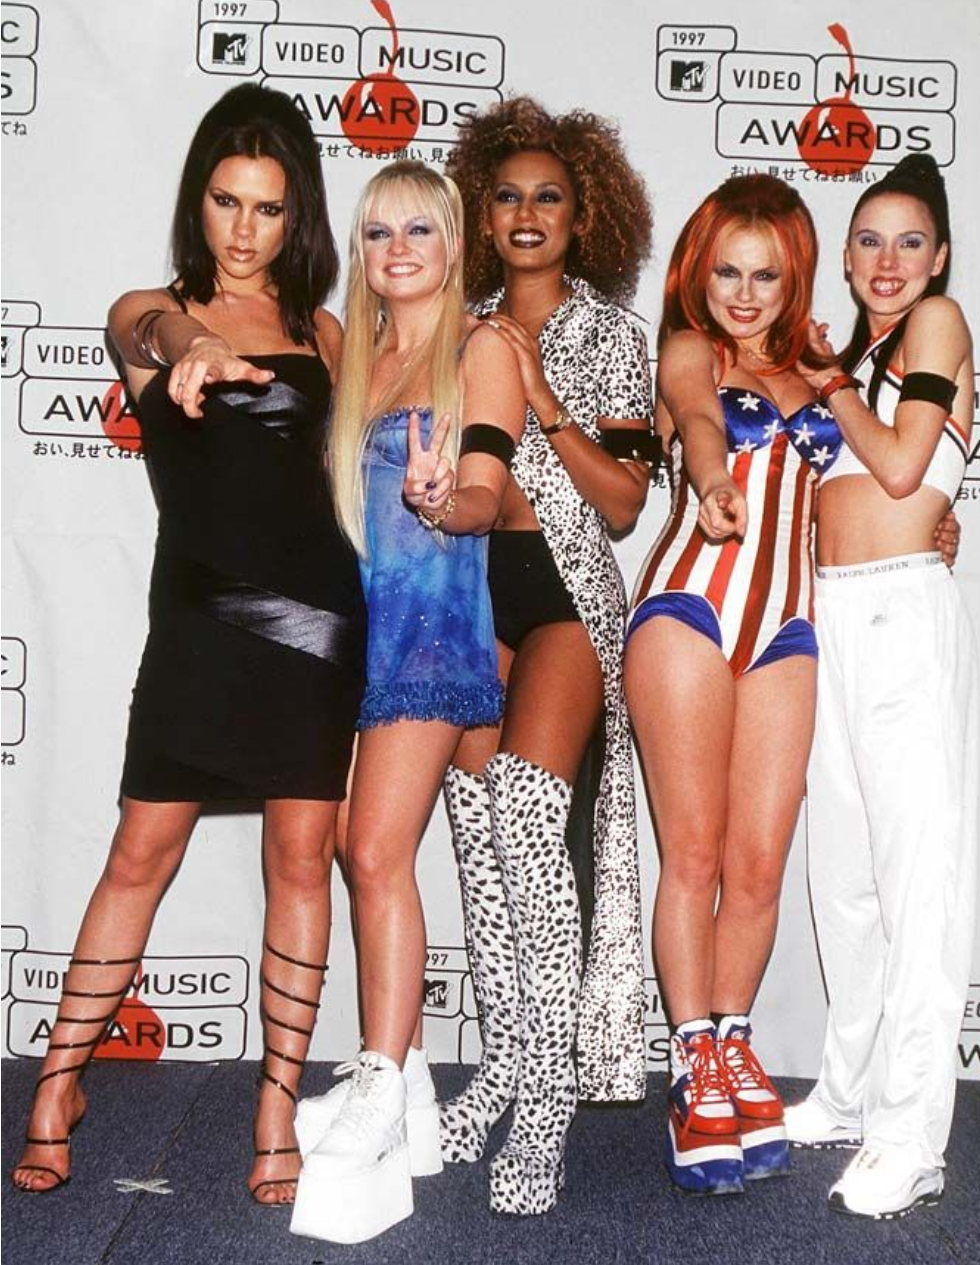 "Photo from The Telegraph  Geri Halliwell ""Ginger Spice""  Melanie Chisholm ""Sporty Spice""  Melanie Brown ""Scary Spice""  Emma Bunton ""Baby Spice""  Victoria Beckham (Adams) "" Posh Spice"""